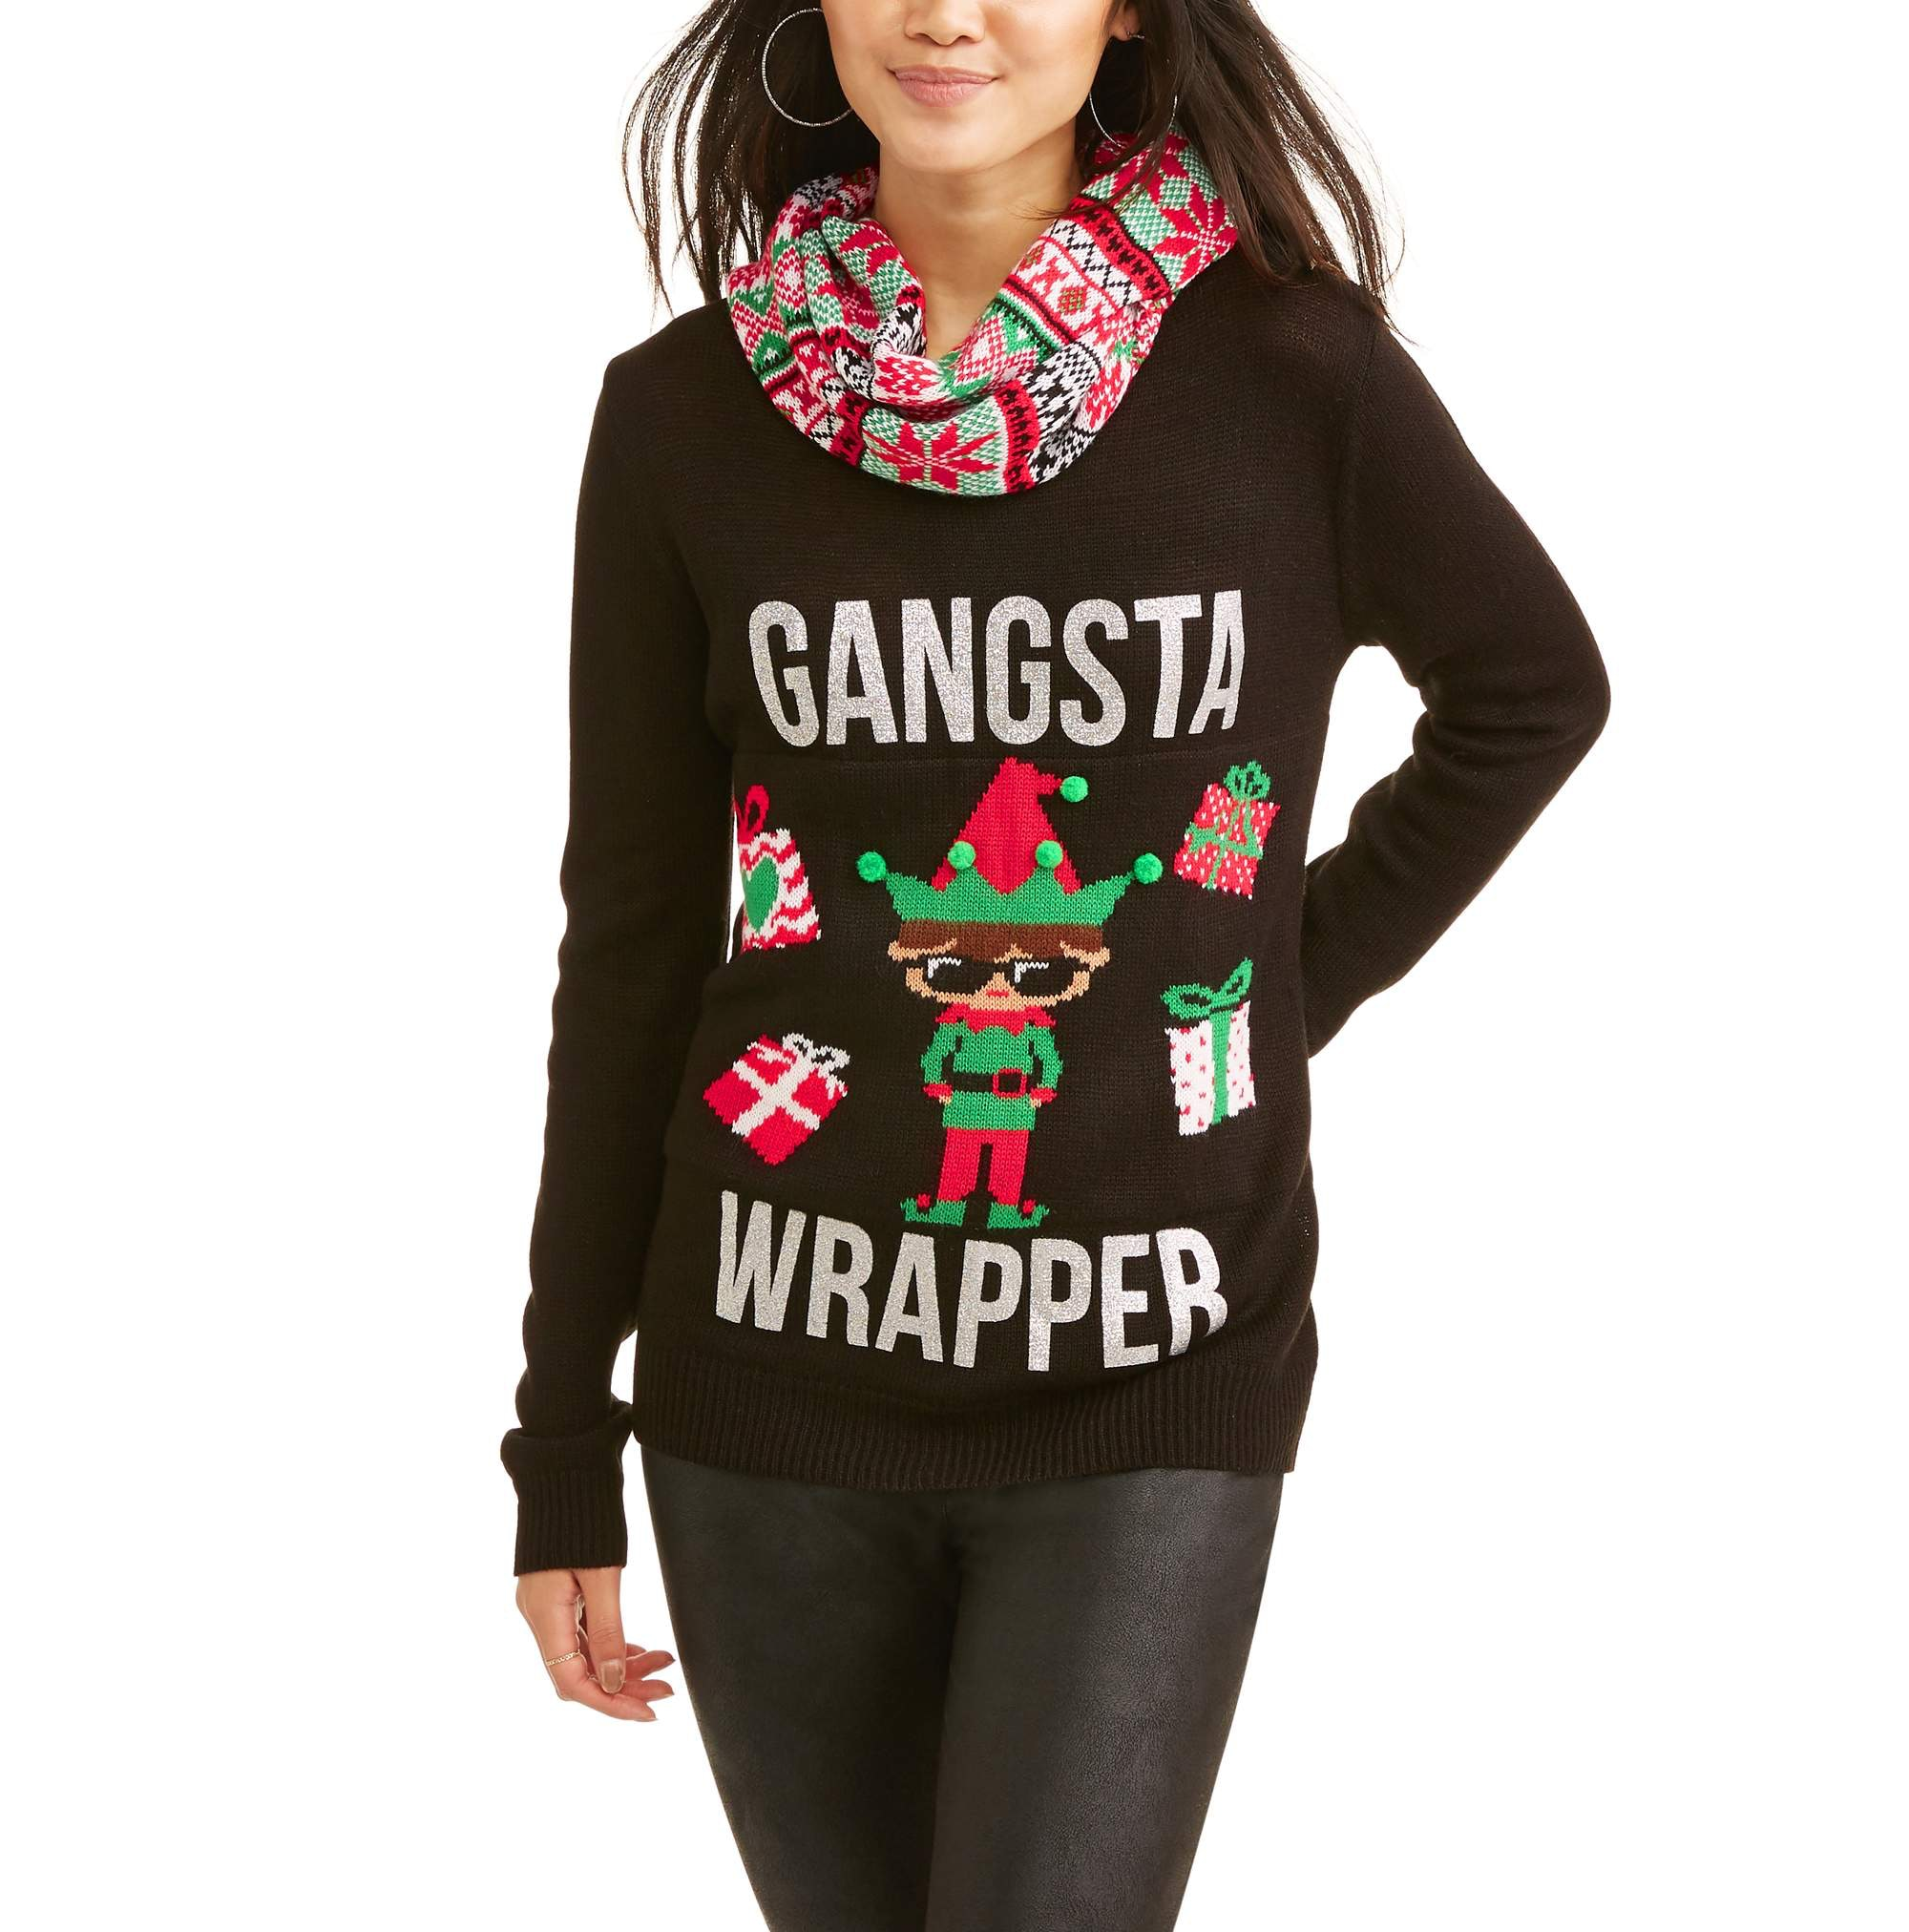 The Best Ugly Christmas Sweaters On Walmart.com Right Now